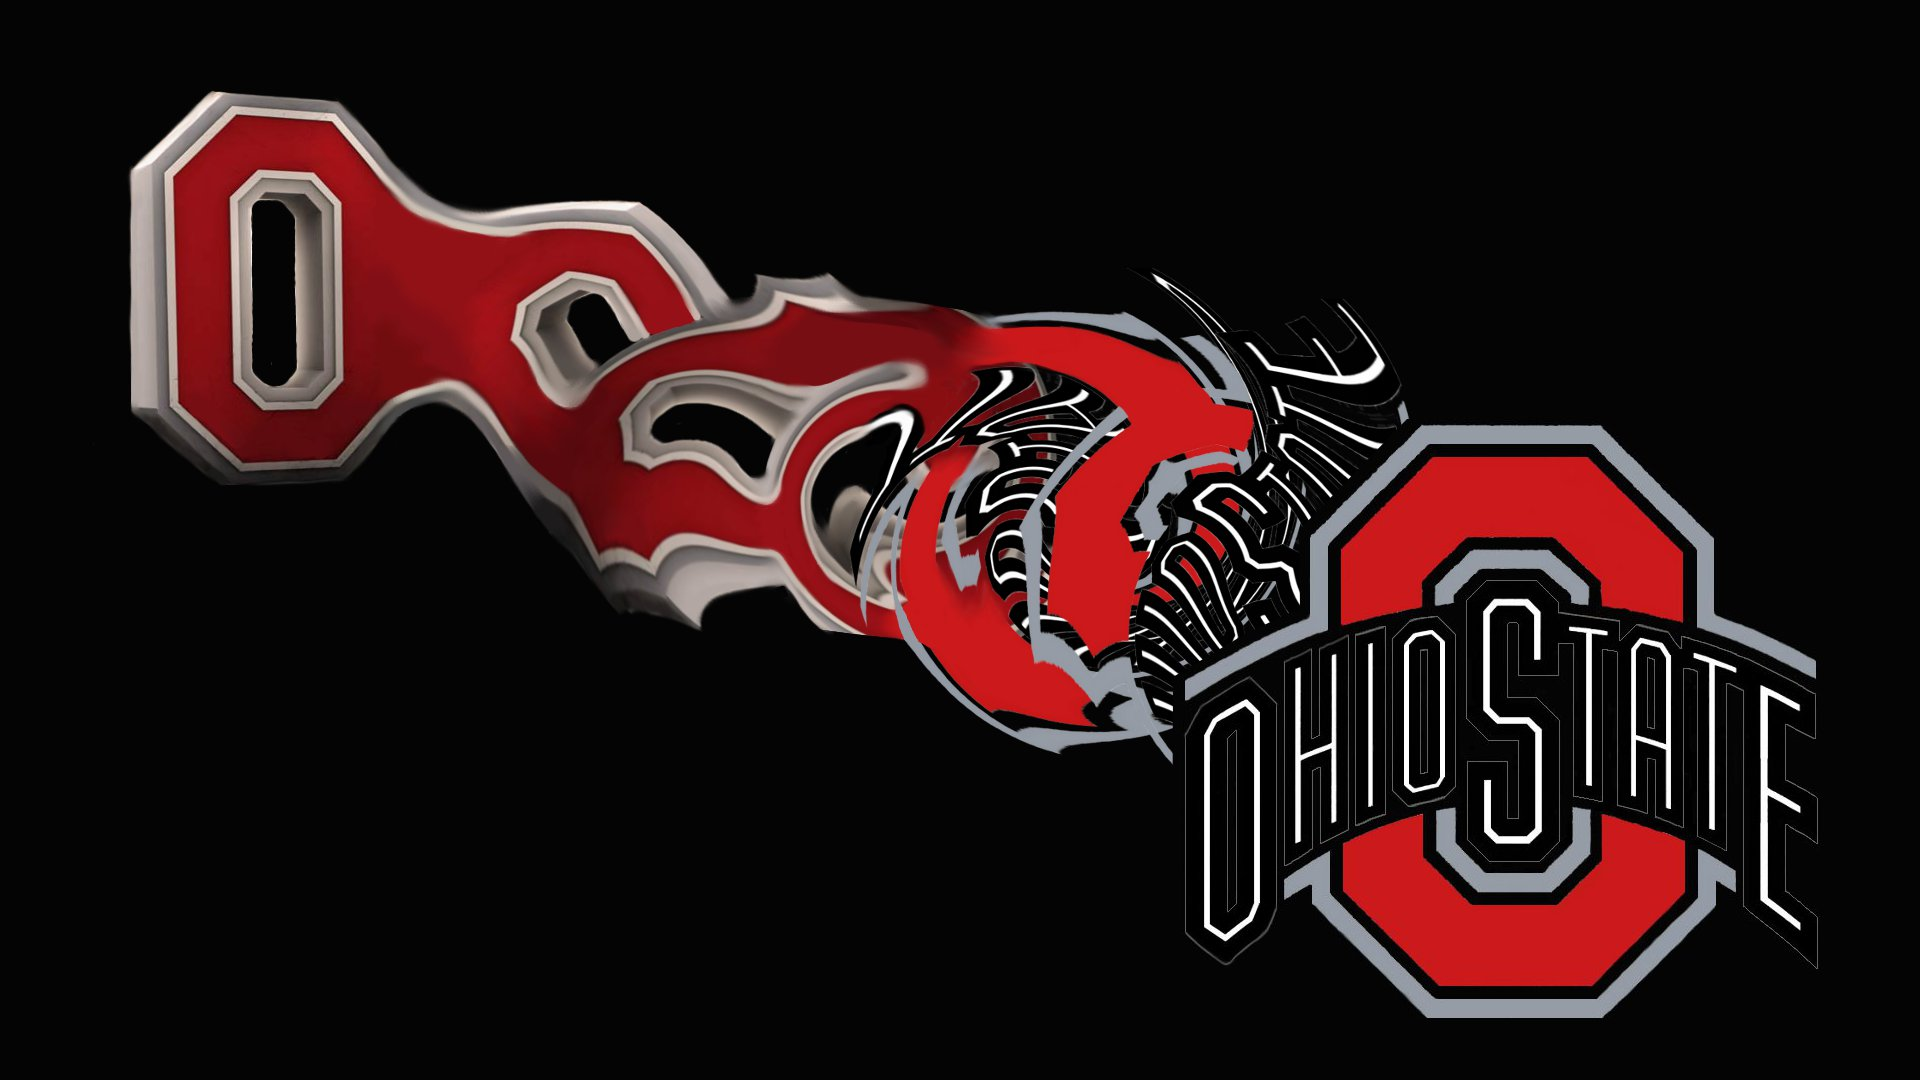 ohio state buckeyes wallpaper HD 1920x1080